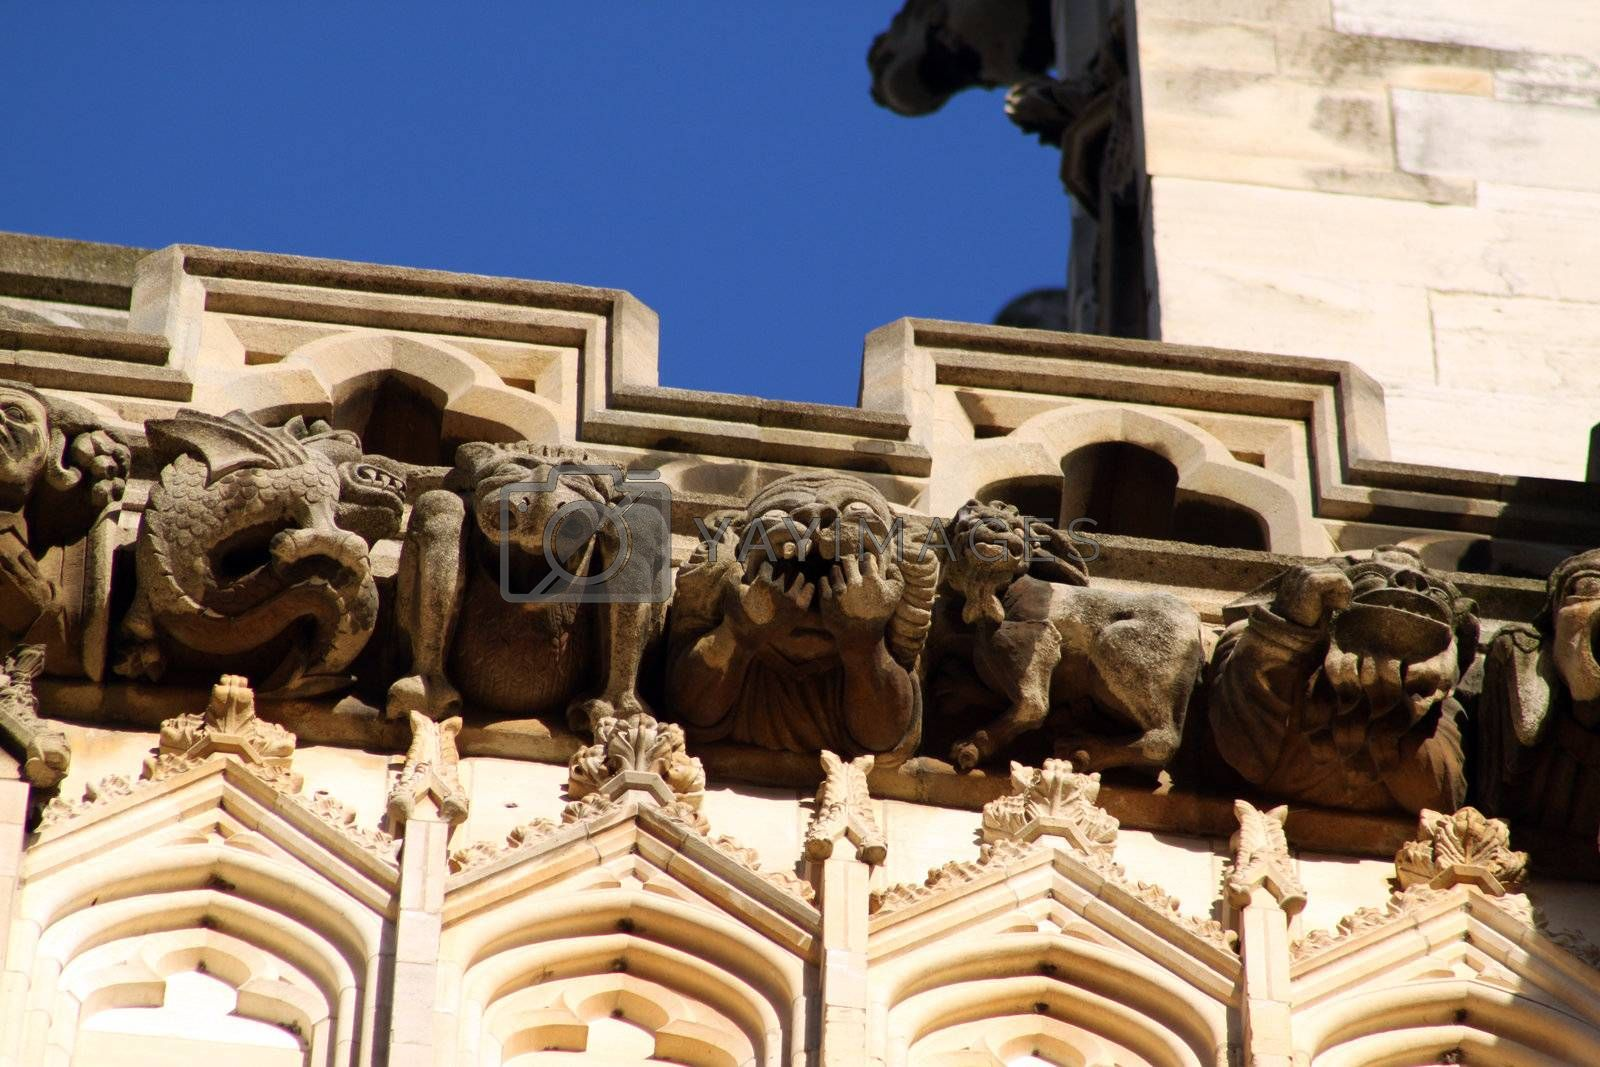 Five gargoyles found on the side of Chester Cathedral